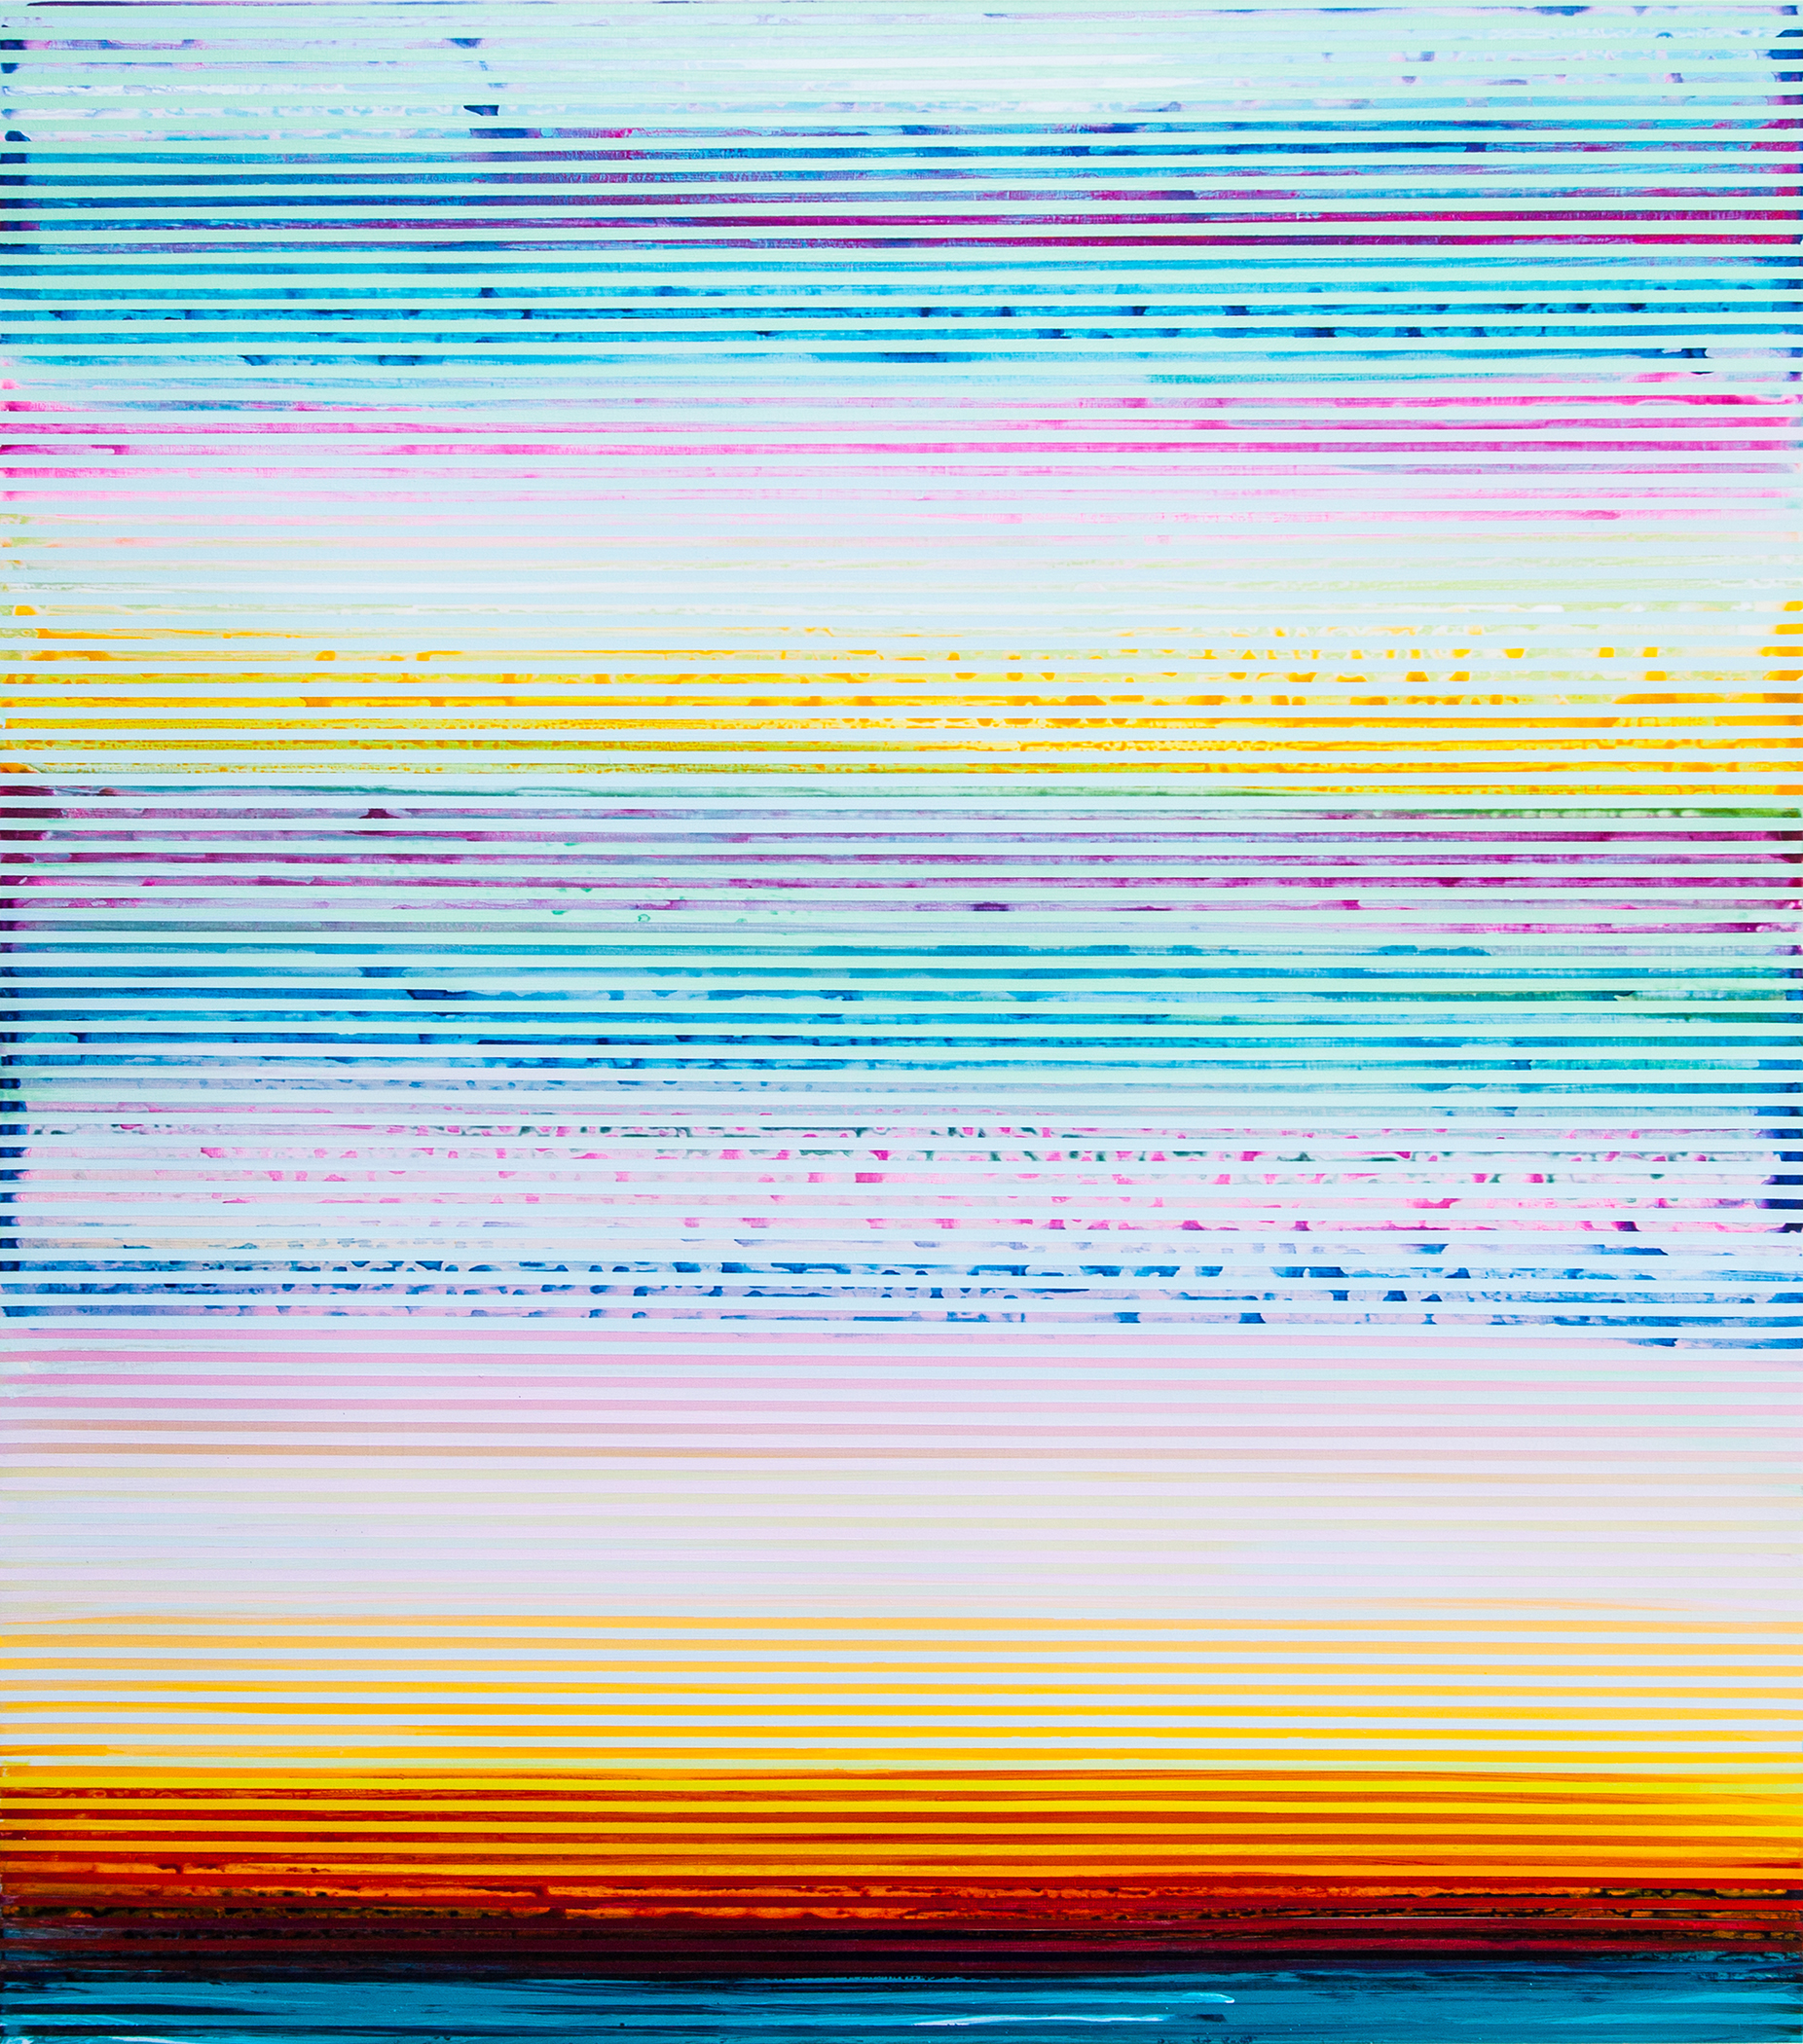 Weaving Landscape No.4_42 x 48 inches_2017